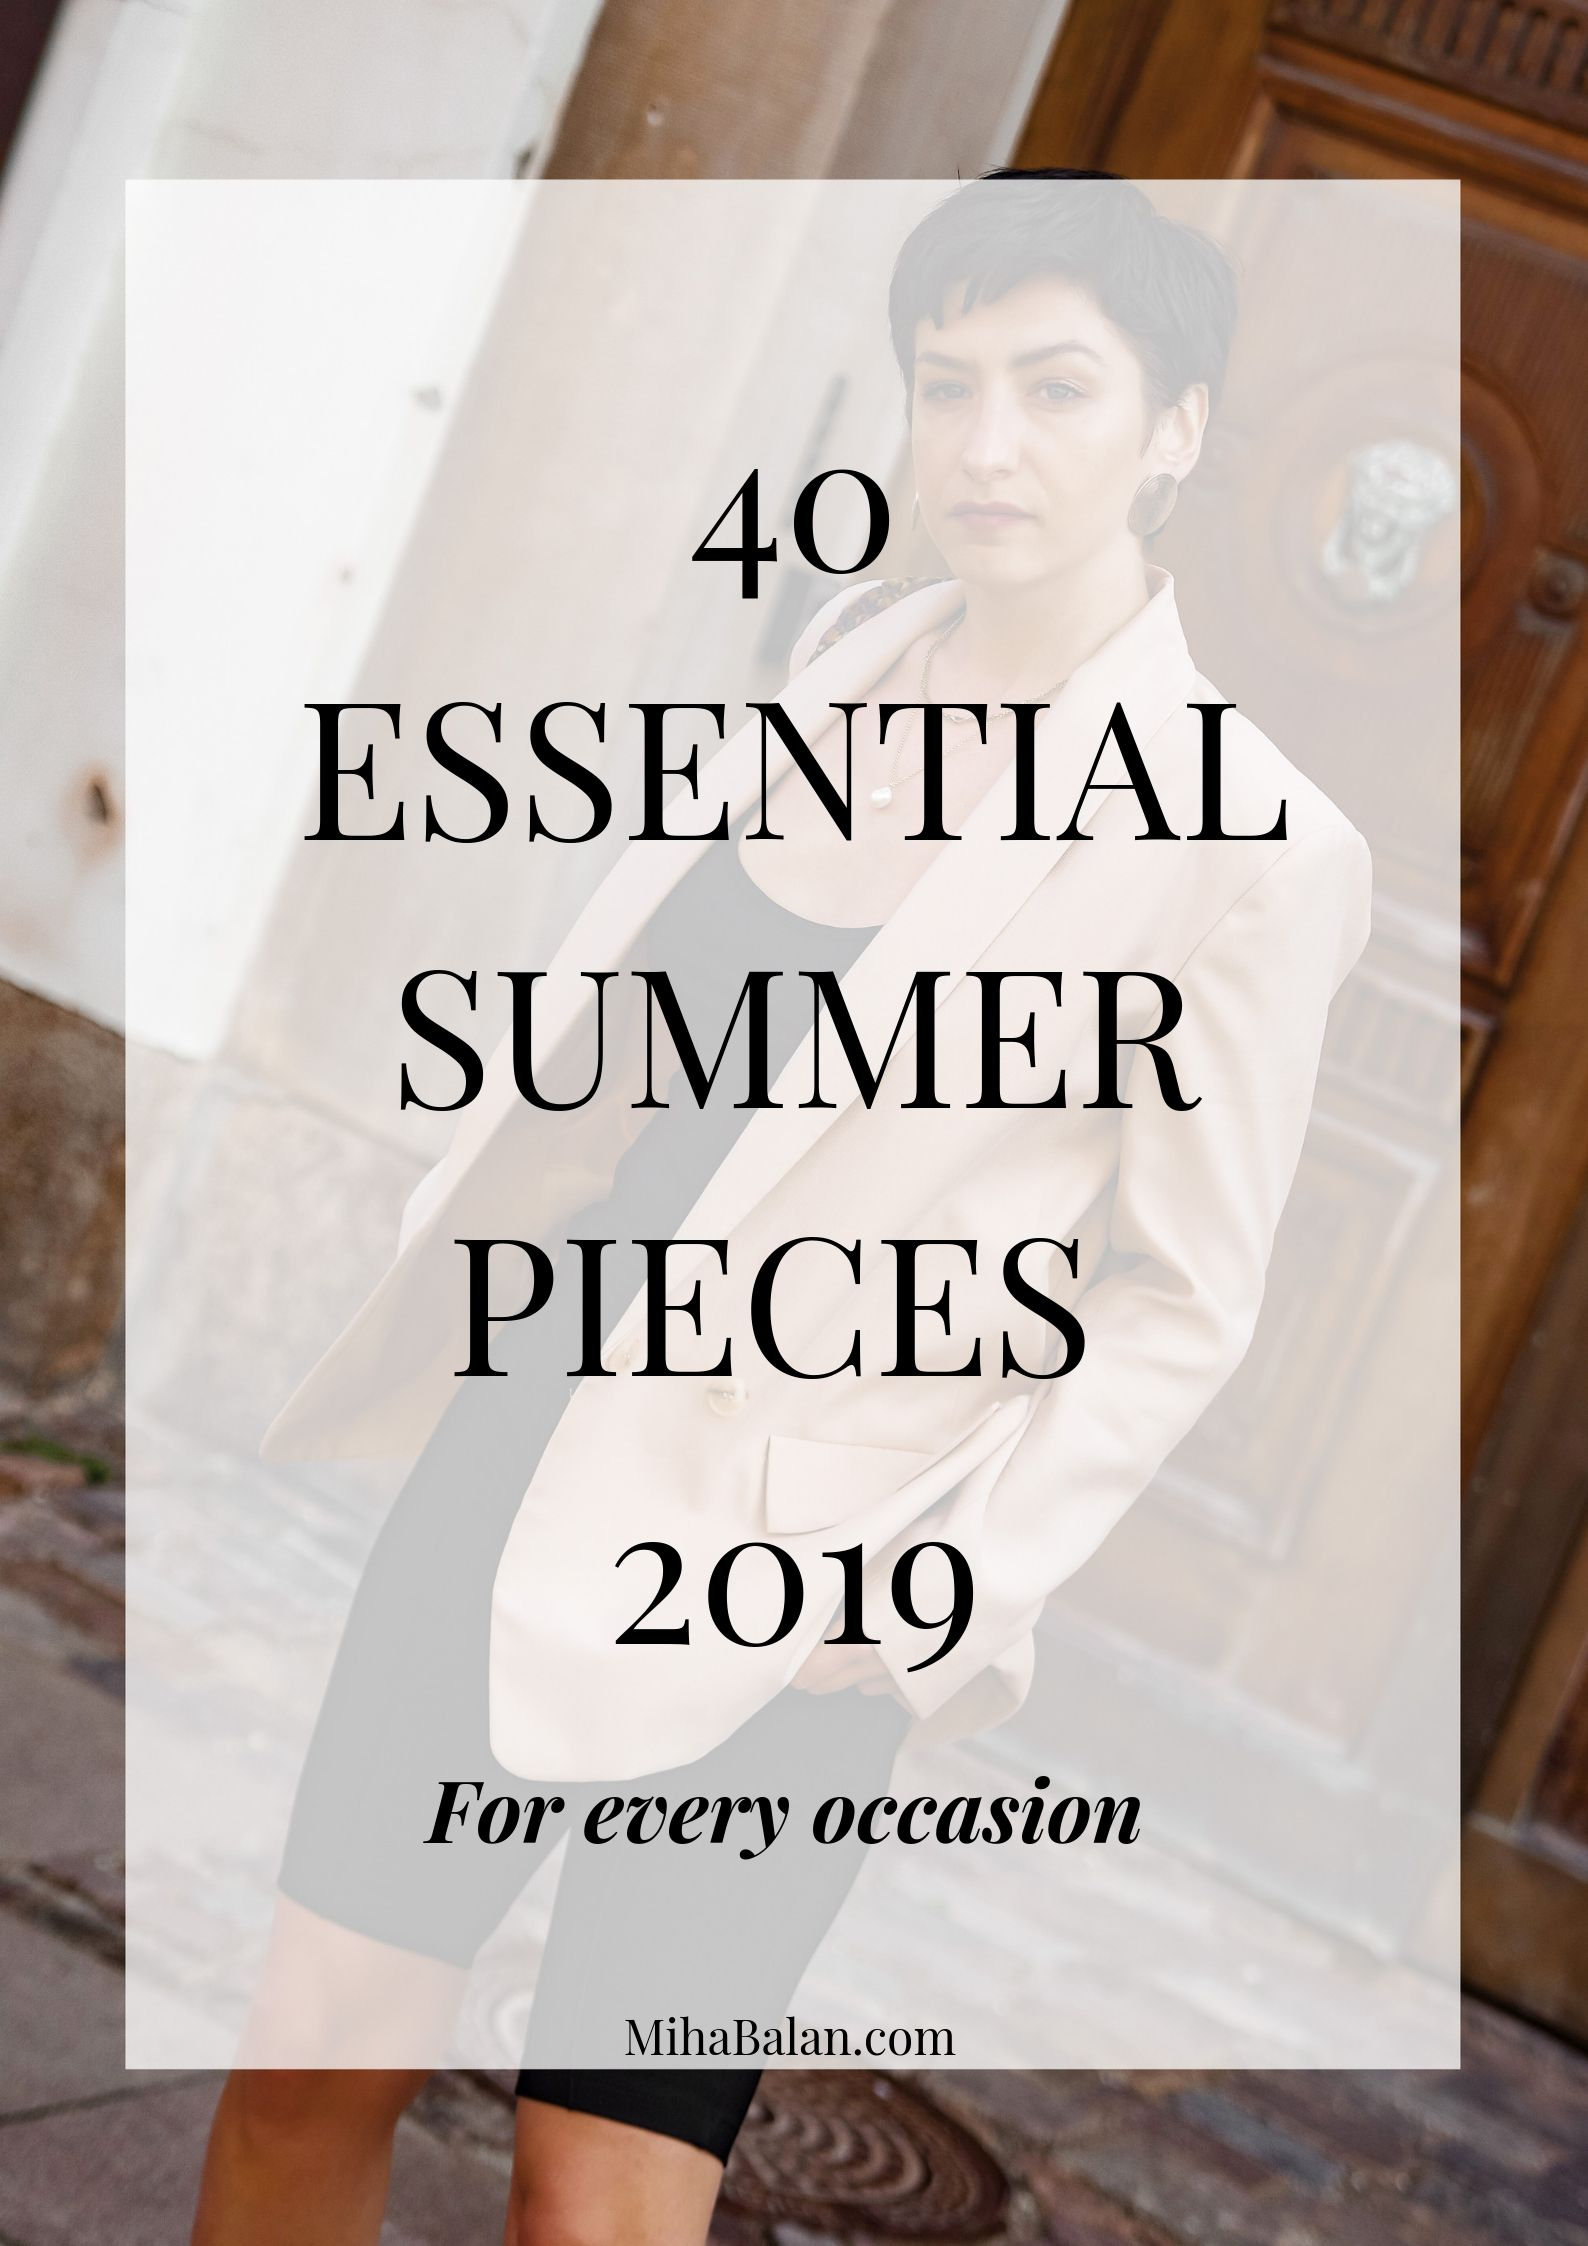 40 ESSENTIAL SUMMER PIECES 2019 for every occasion